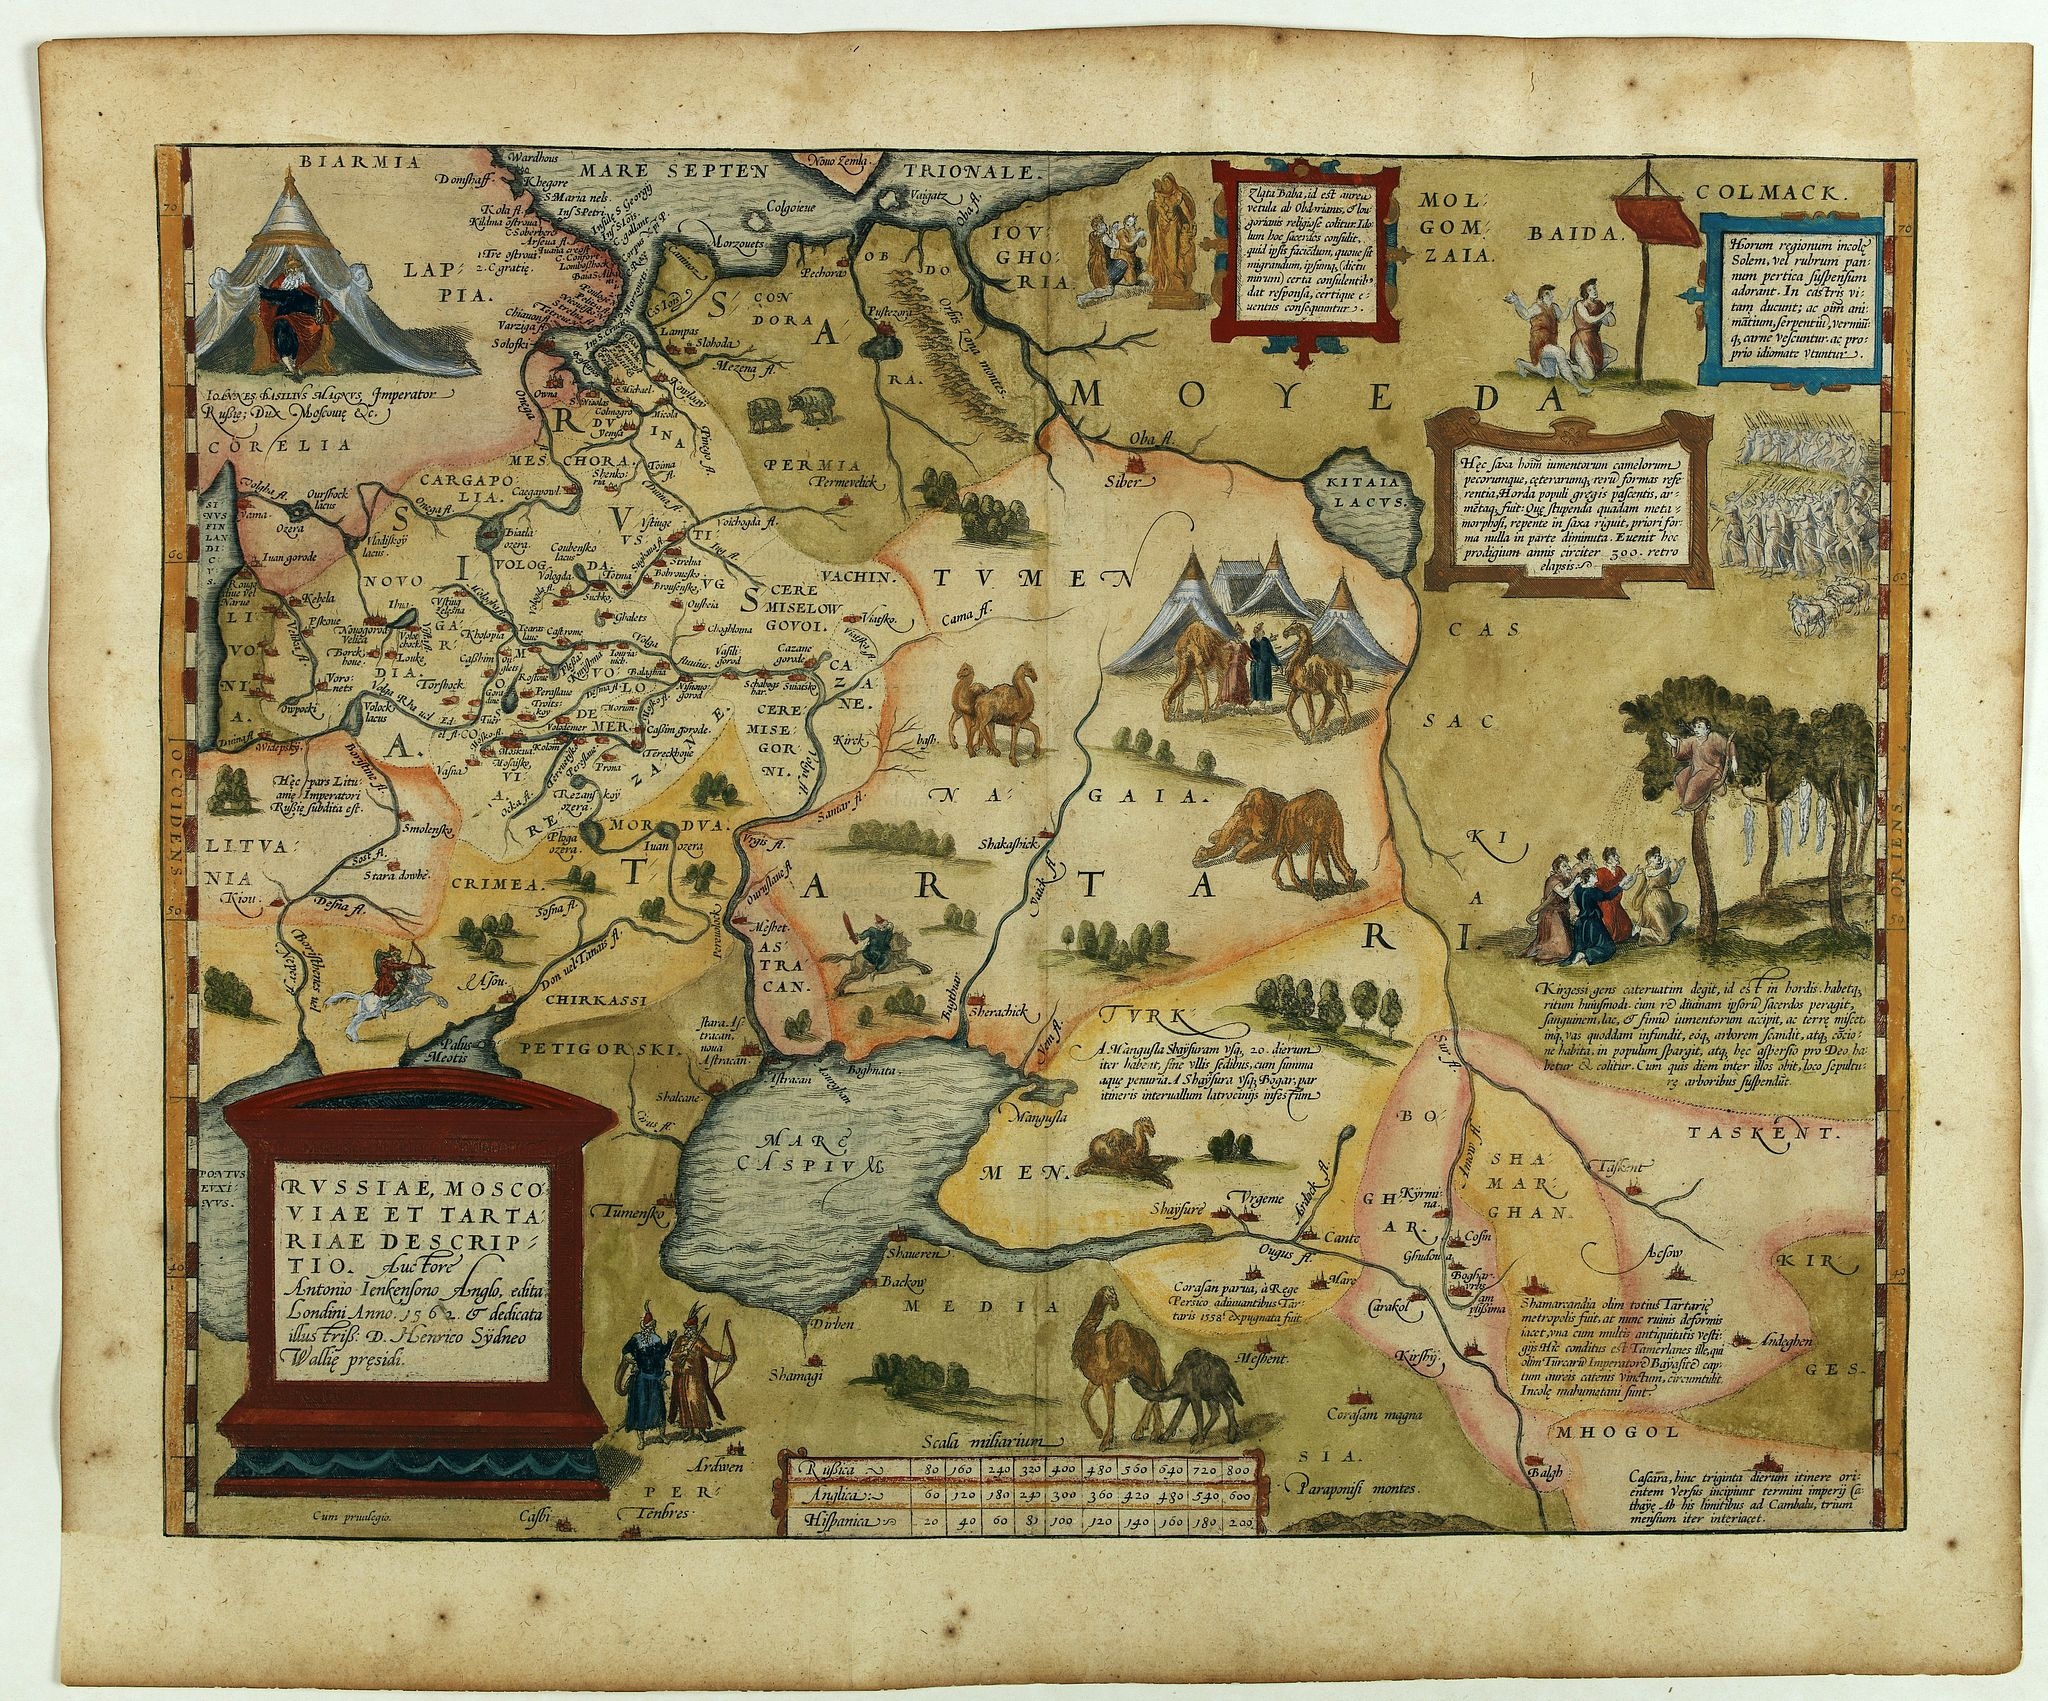 ORTELIUS, A.,  Russiae, Moscoviae et Tartariae Descriptio. [With Latin text on verso], antique map, old maps